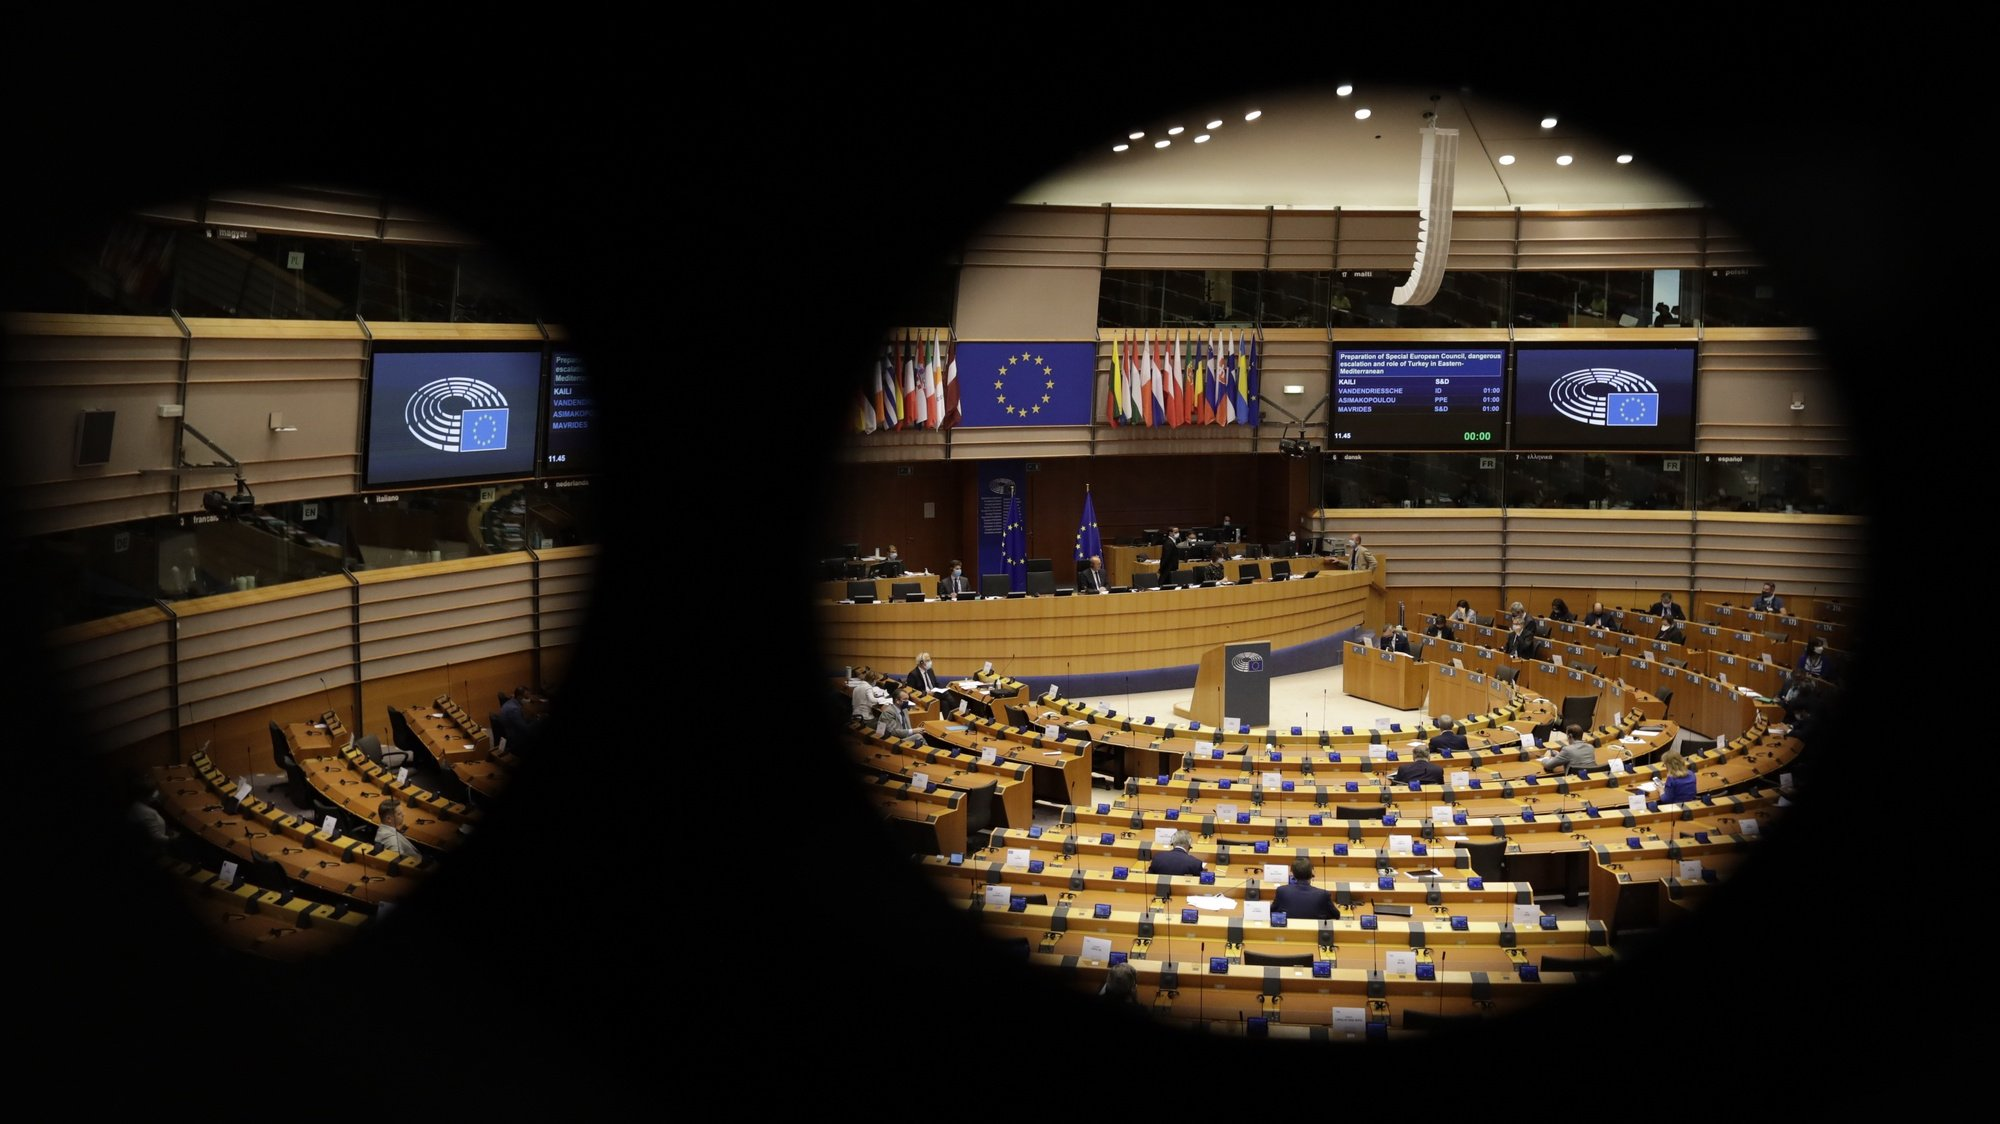 epa08669666 General view during a plenary session of European Parliament in Brussels, Belgium, 15 September 2020. The plenary session is taking place from 14 to 17 September. 15 September's main debate will hear statements on the preparation of the Special European Council which focuses on the escalation and the role of Turkey in the Eastern-Mediterranean.  EPA/OLIVIER HOSLET